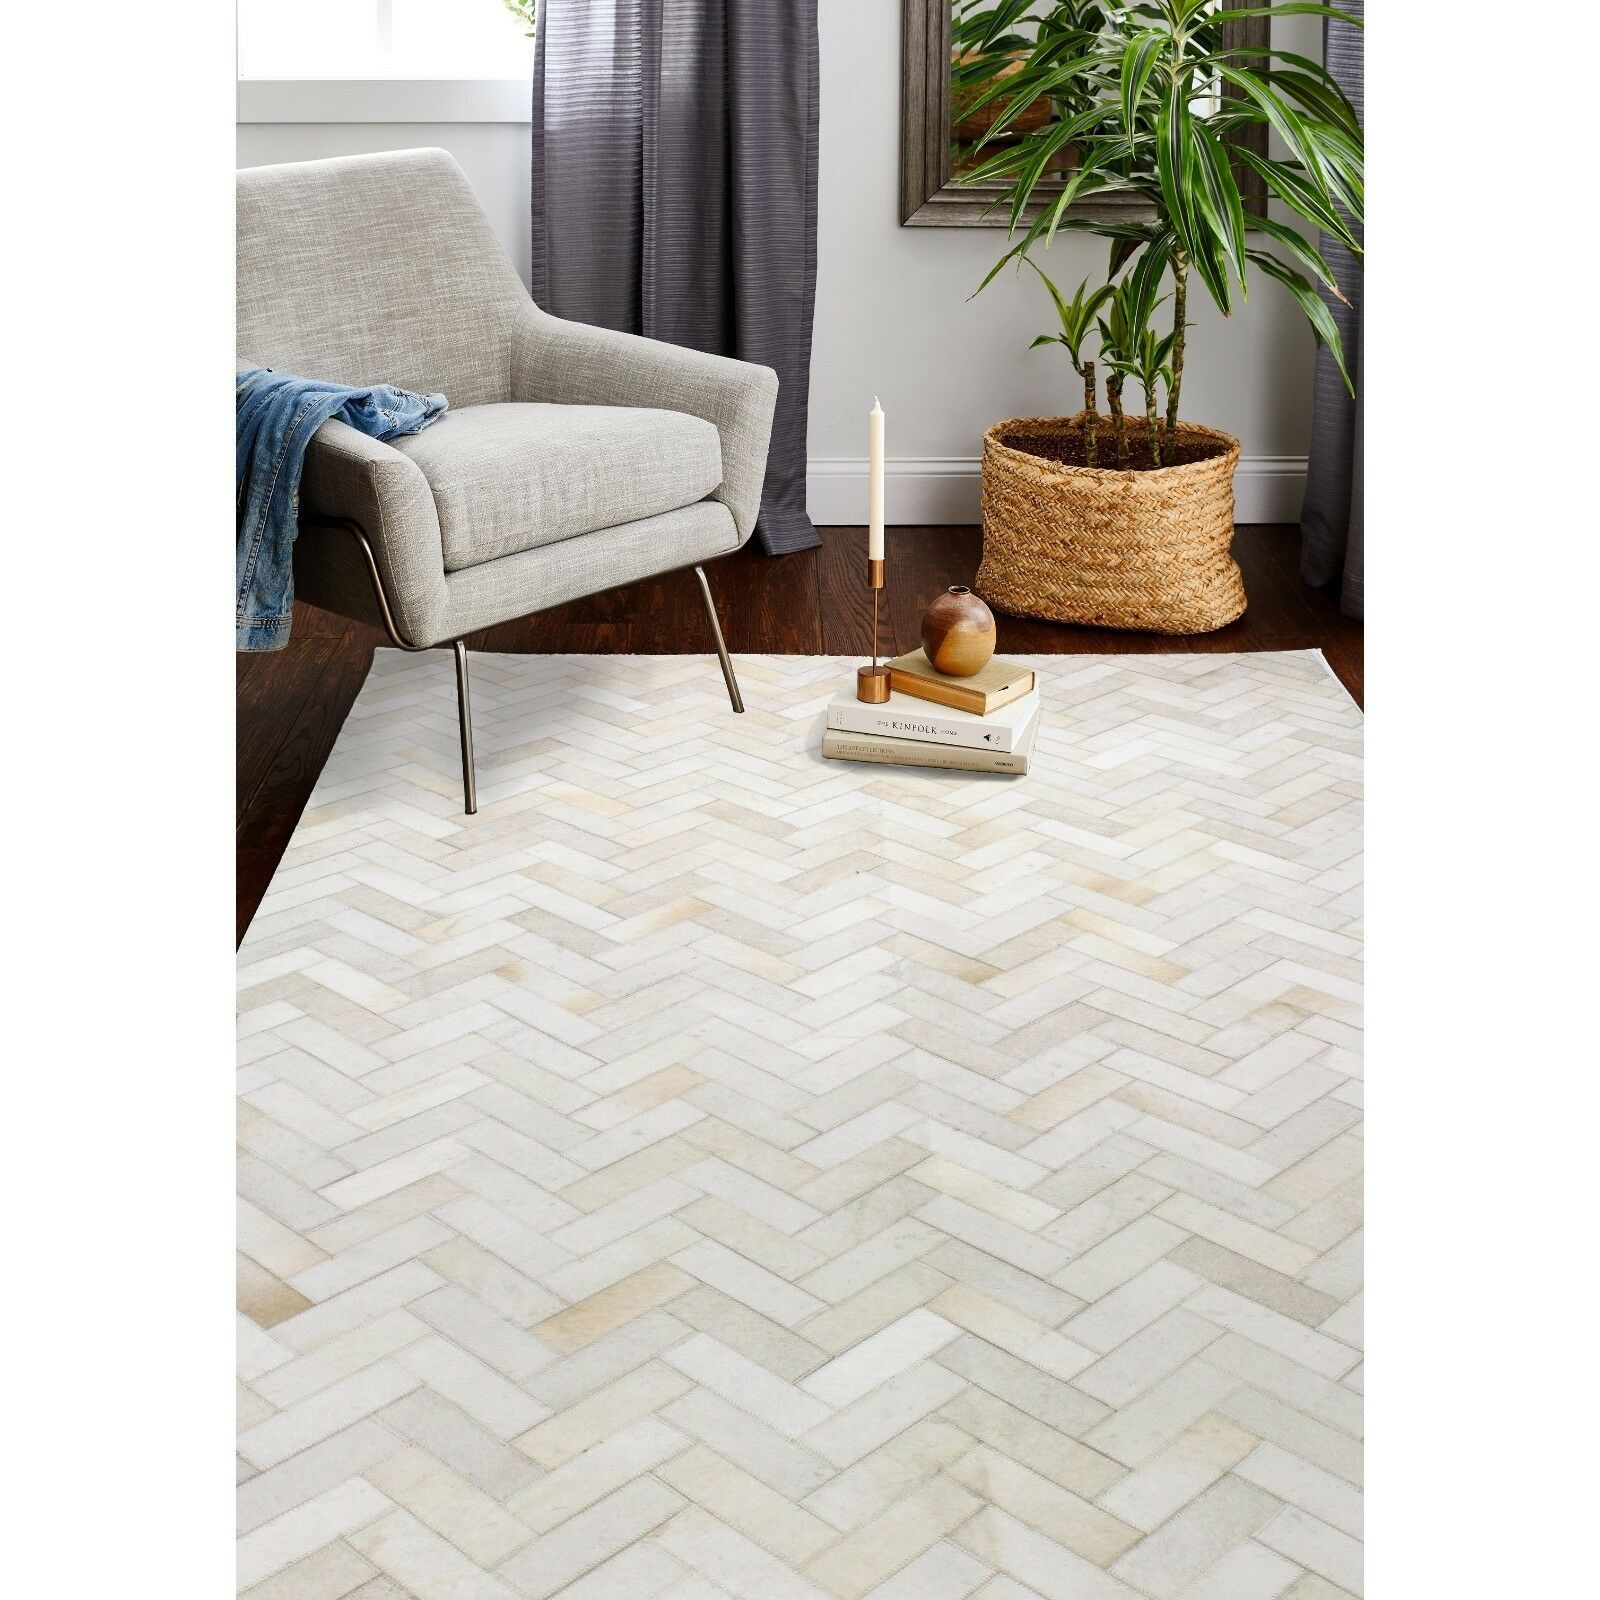 Primary image for Bashian Santa Fe Hand Stitched Chevron Cowhide Rug Cream 4' x 6'  H112-H12